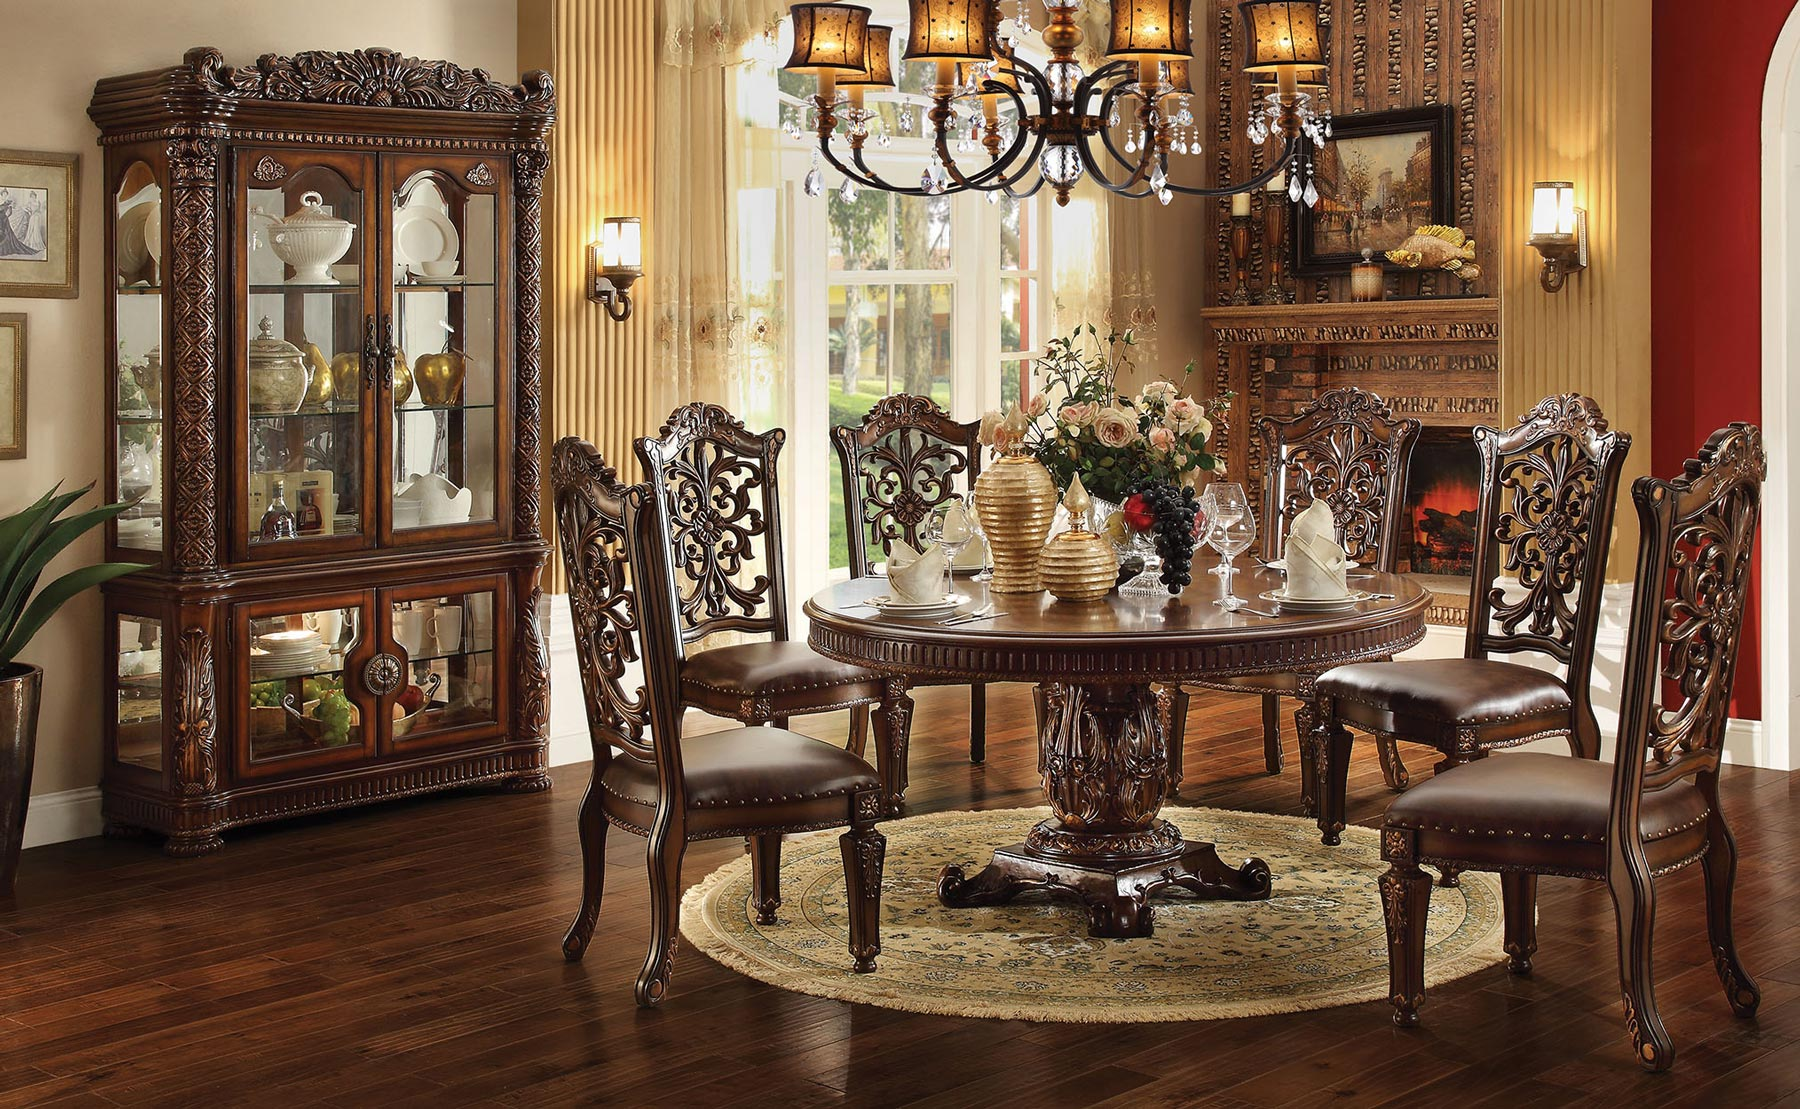 circular dining room | Vendome Round 5 Piece Dining Room Set | Gonzalez Furniture